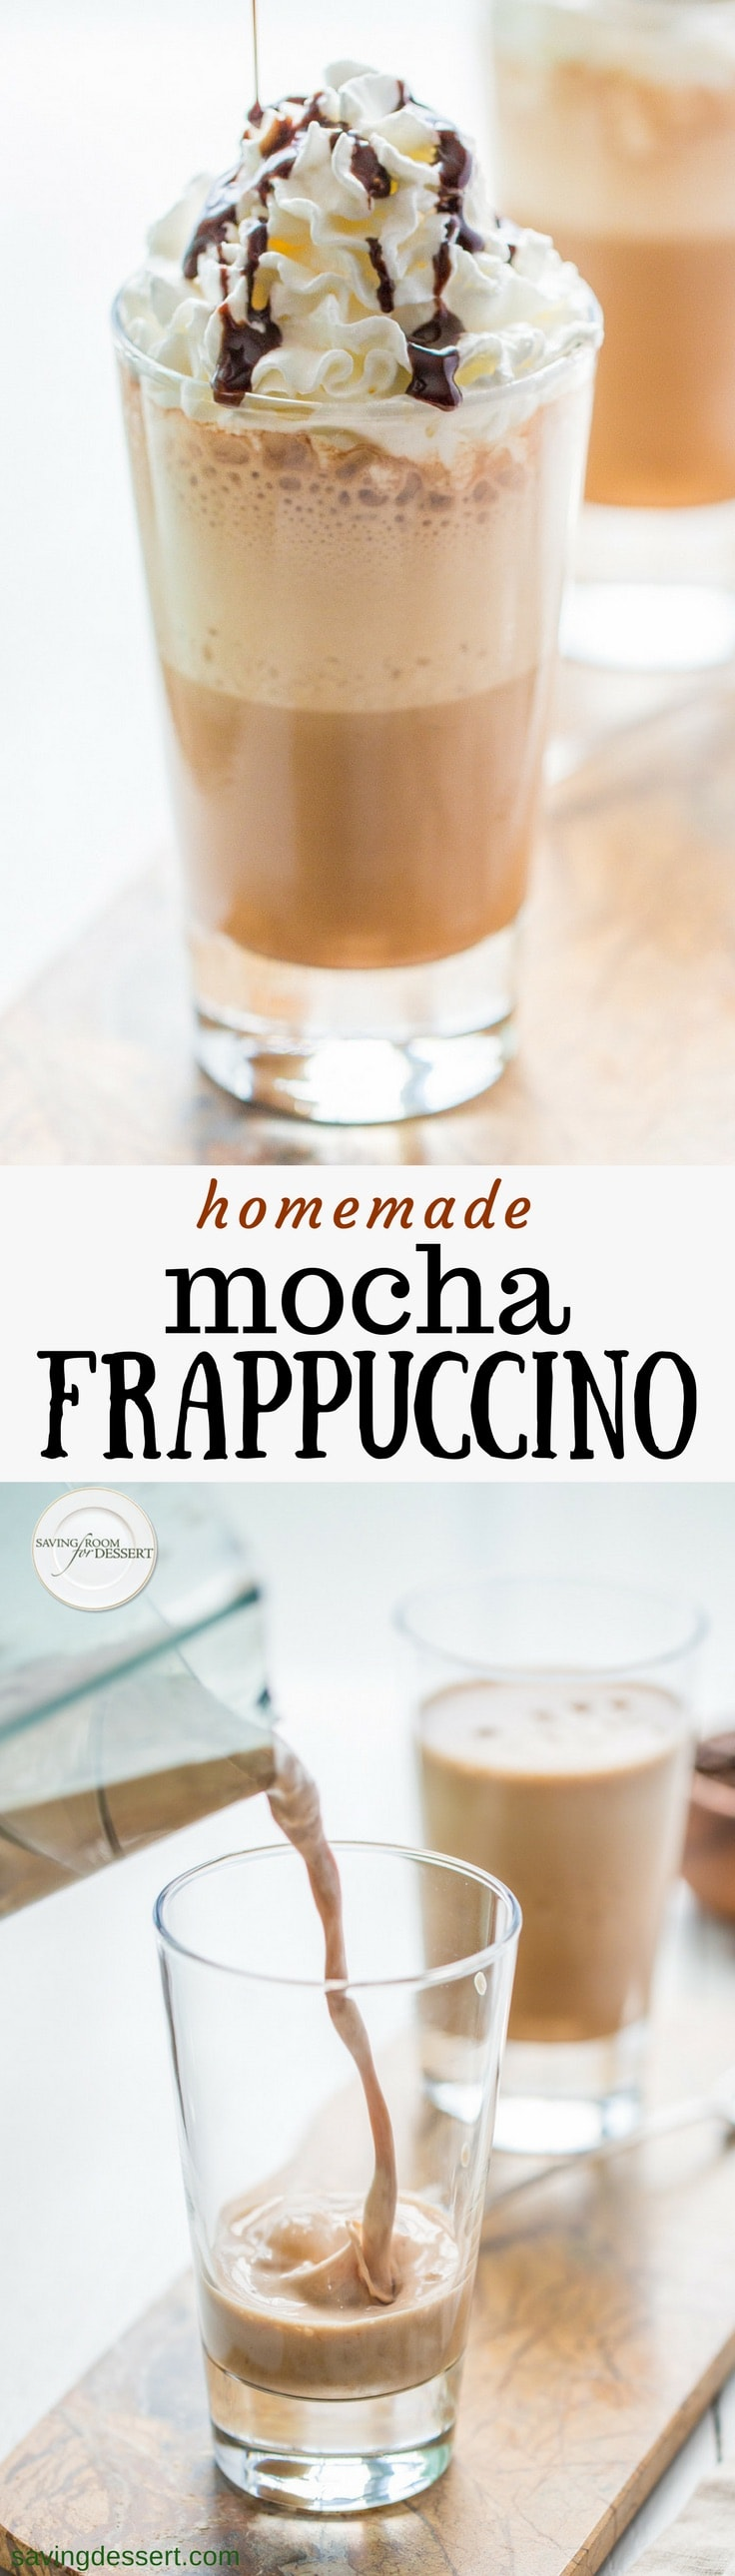 Cool and creamy, Homemade Mocha Frappuccino is a simple summertime treat made with just a few ingredients. Inexpensive and delicious! #savingroomfordessert #mocha #frappuccino #mochafrappuccino #coffee #frozencoffee